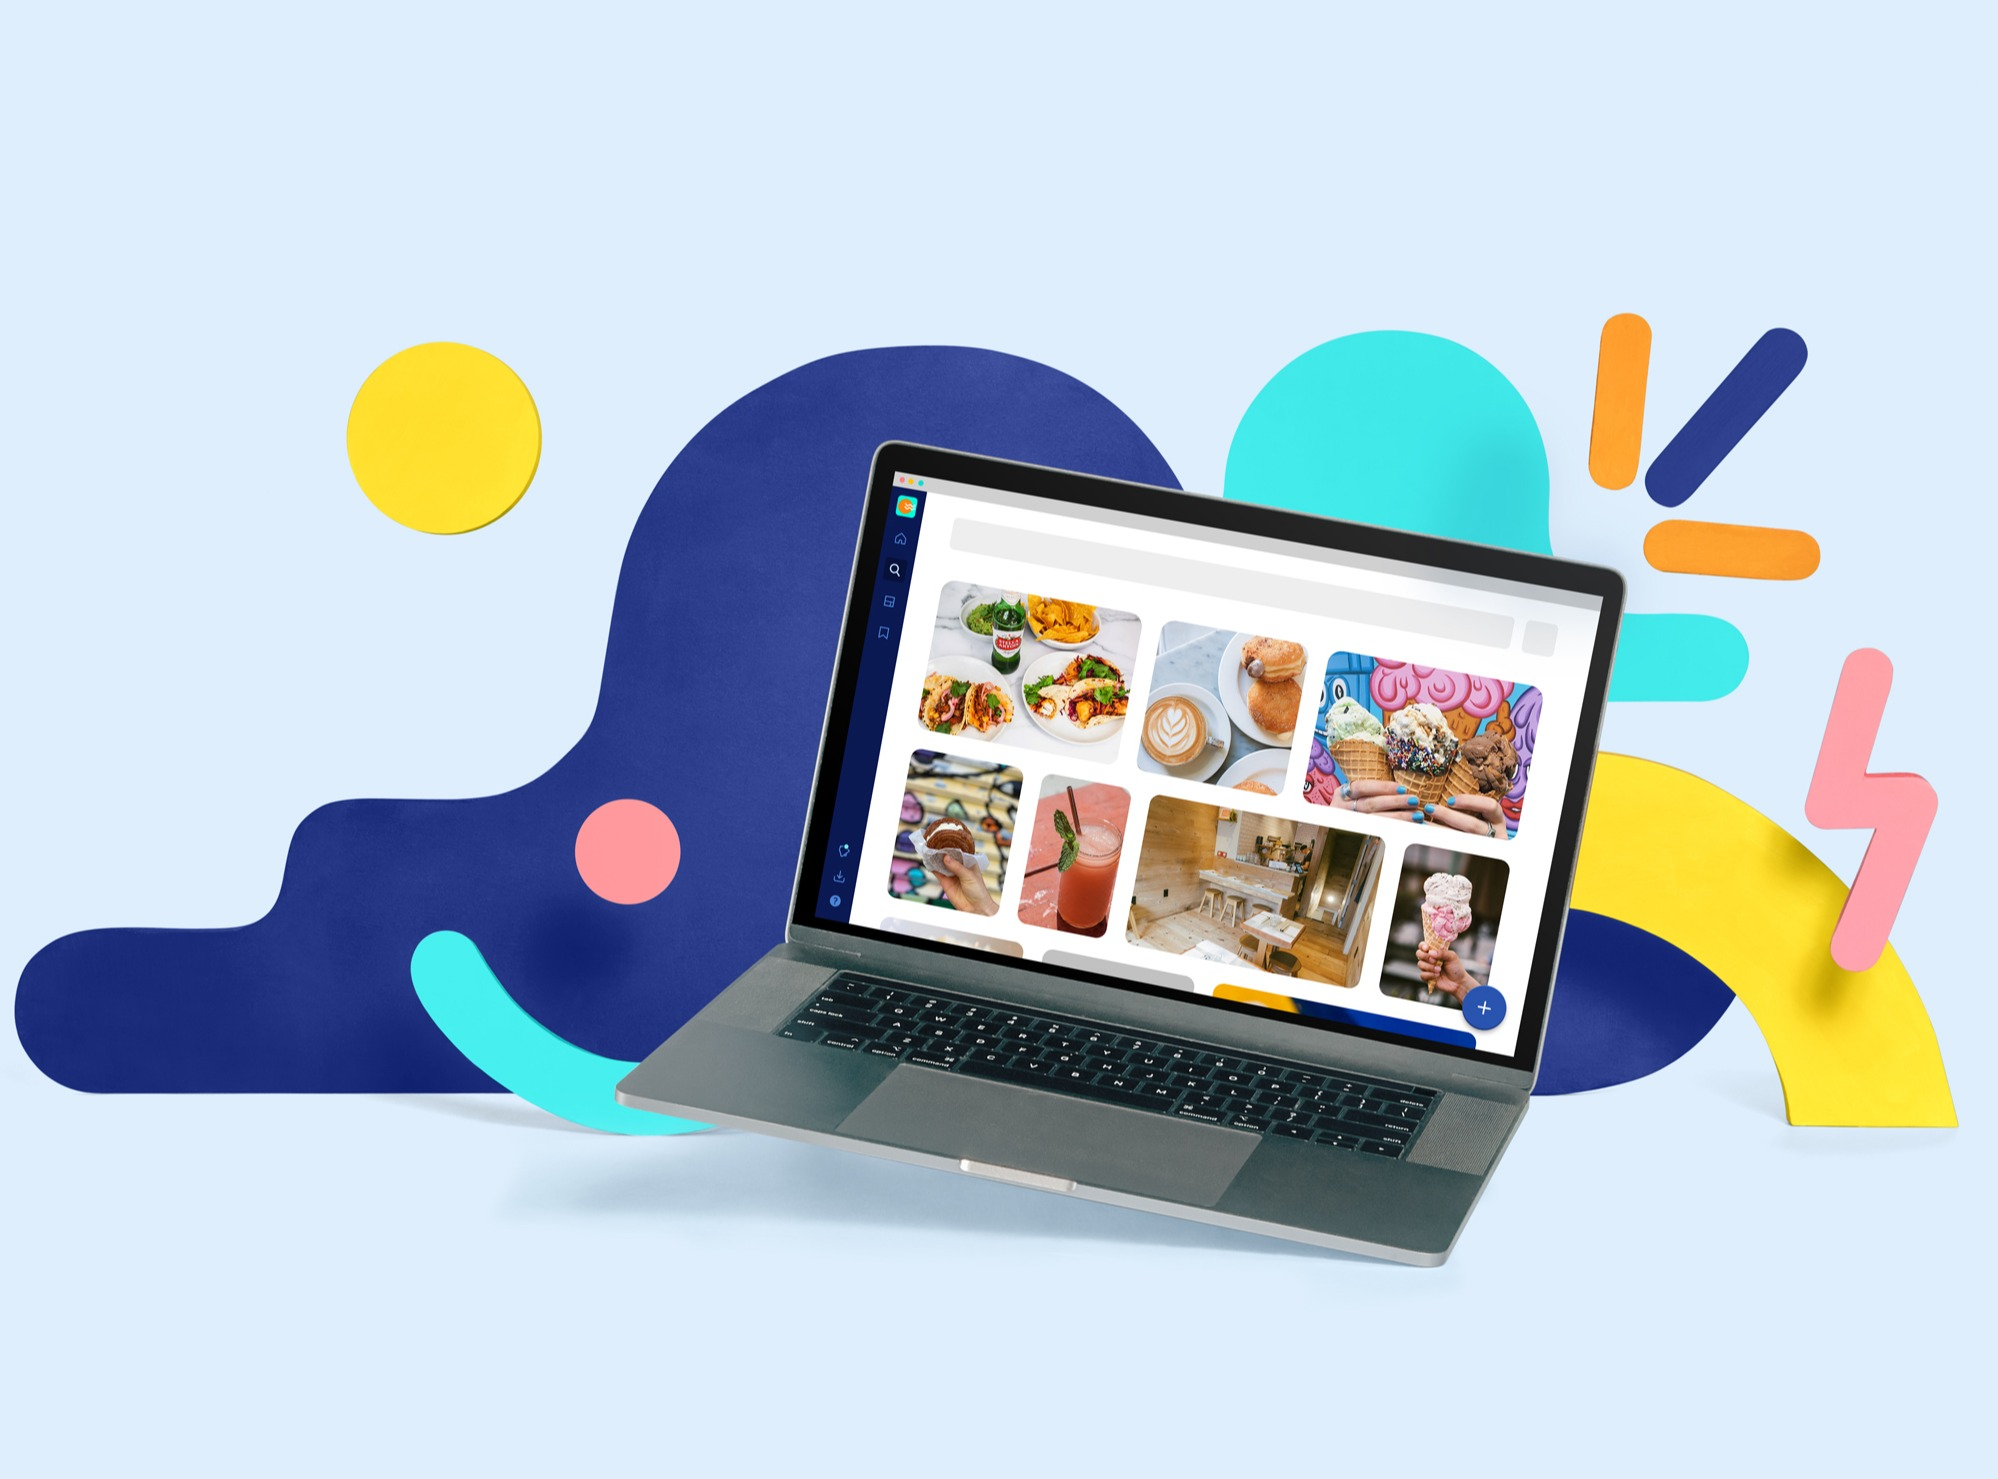 Picture of laptop with Air dashboard and colorful objects around it